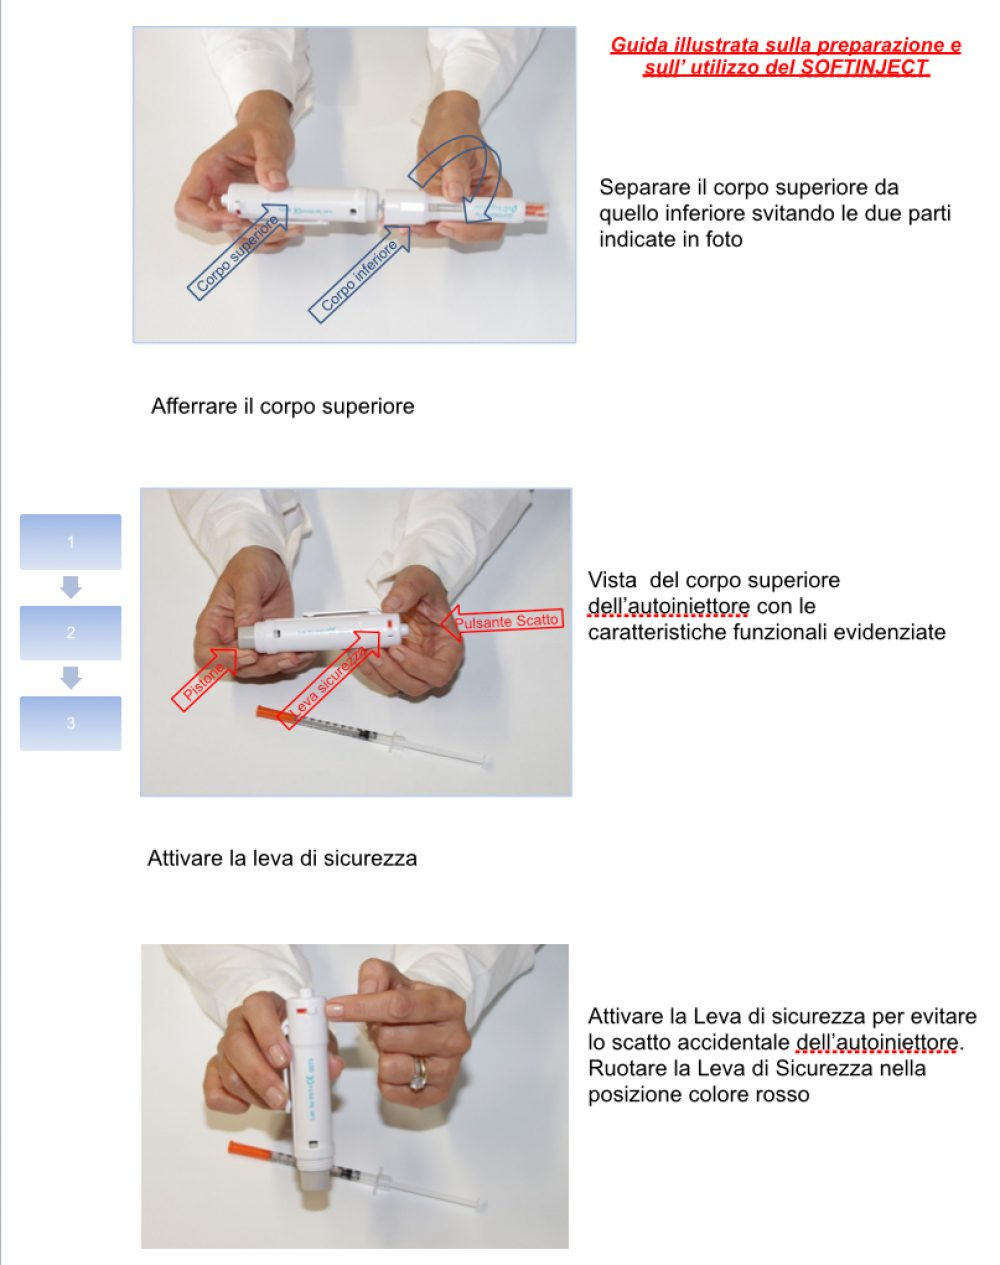 Where To Inject Intracavernosal Injections : Softinject androsystems